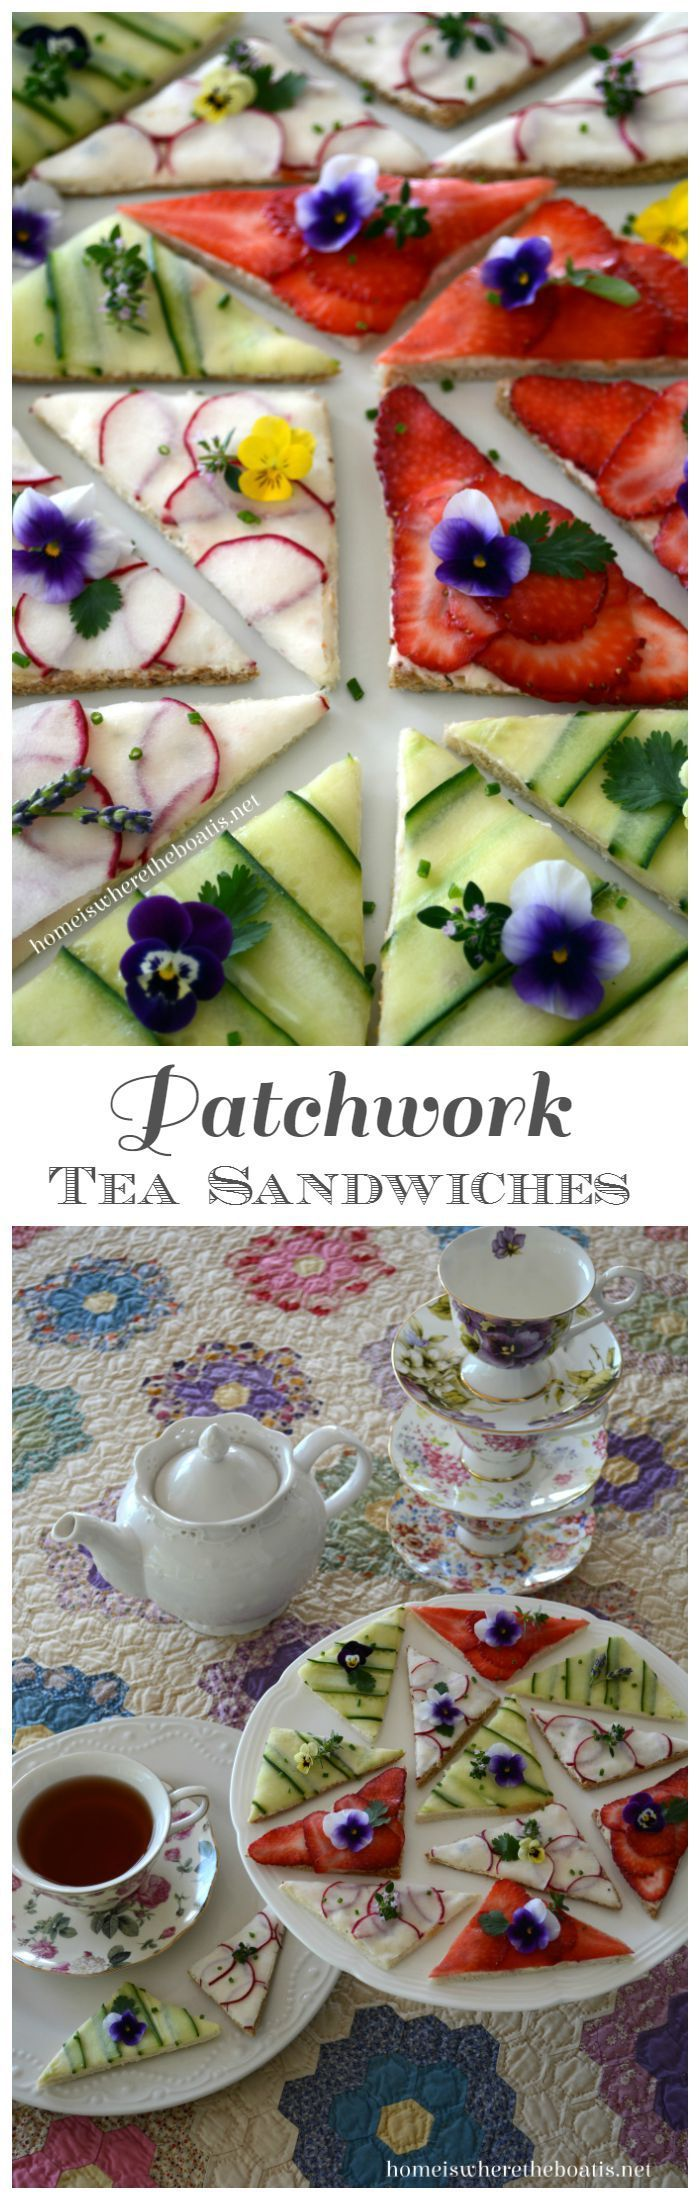 Patchwork Tea Sandwiches! A patchwork of cucumber, thinly sliced radishes, and strawberries on top of a cream cheese spread. Garnish with edible flowers and herbs | homeiswheretheboatis.net #tea